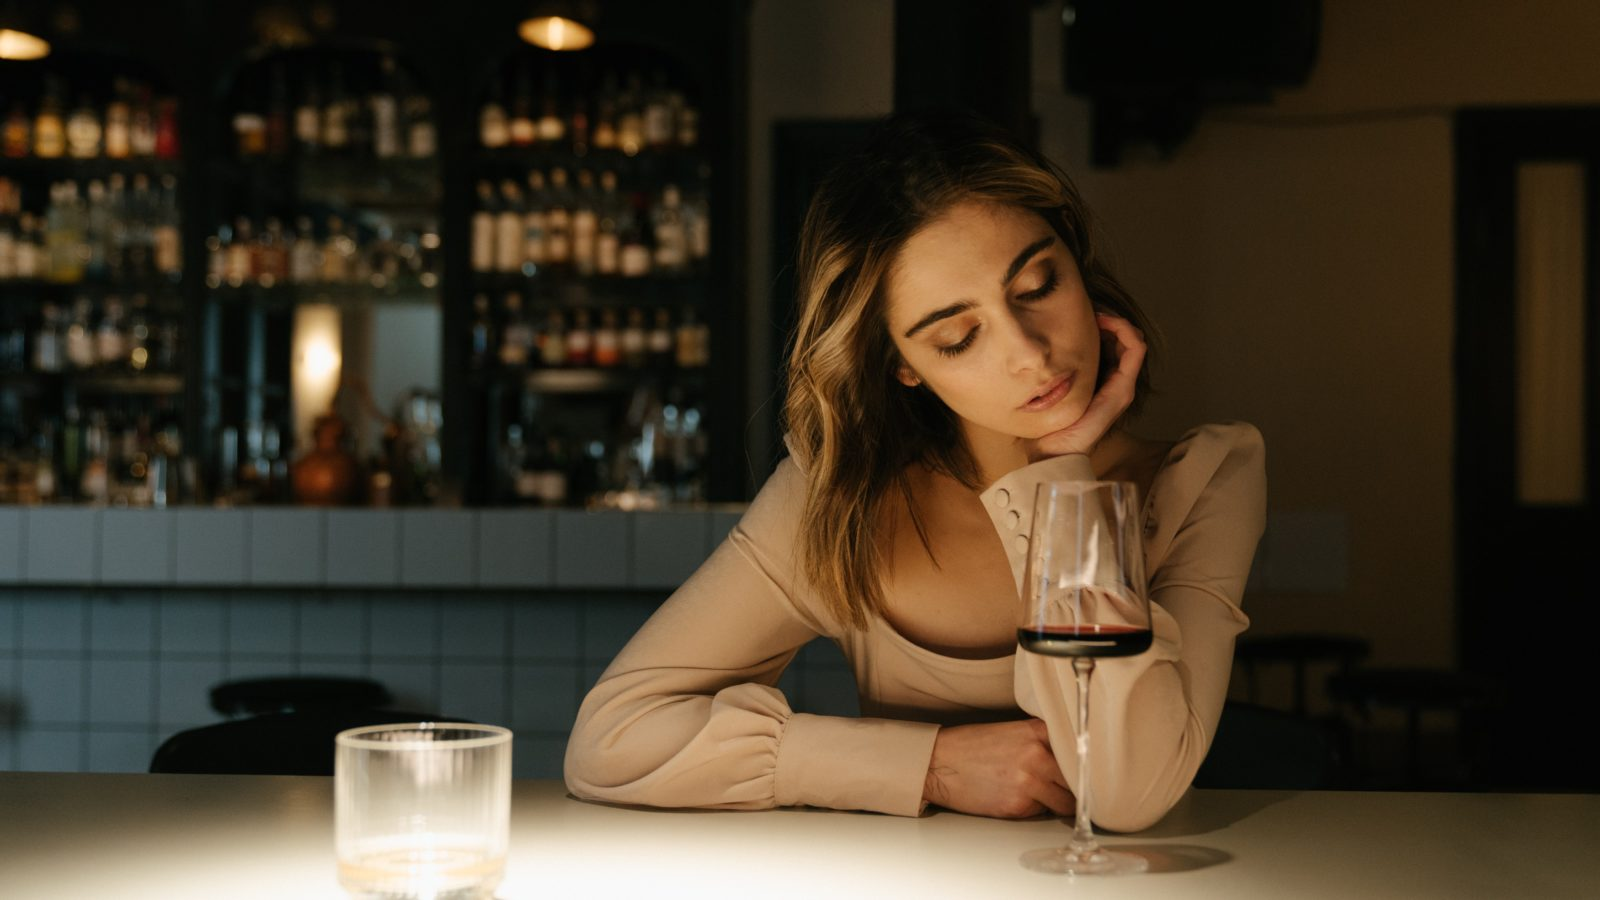 4 date conversation mistakes that turn off women 2